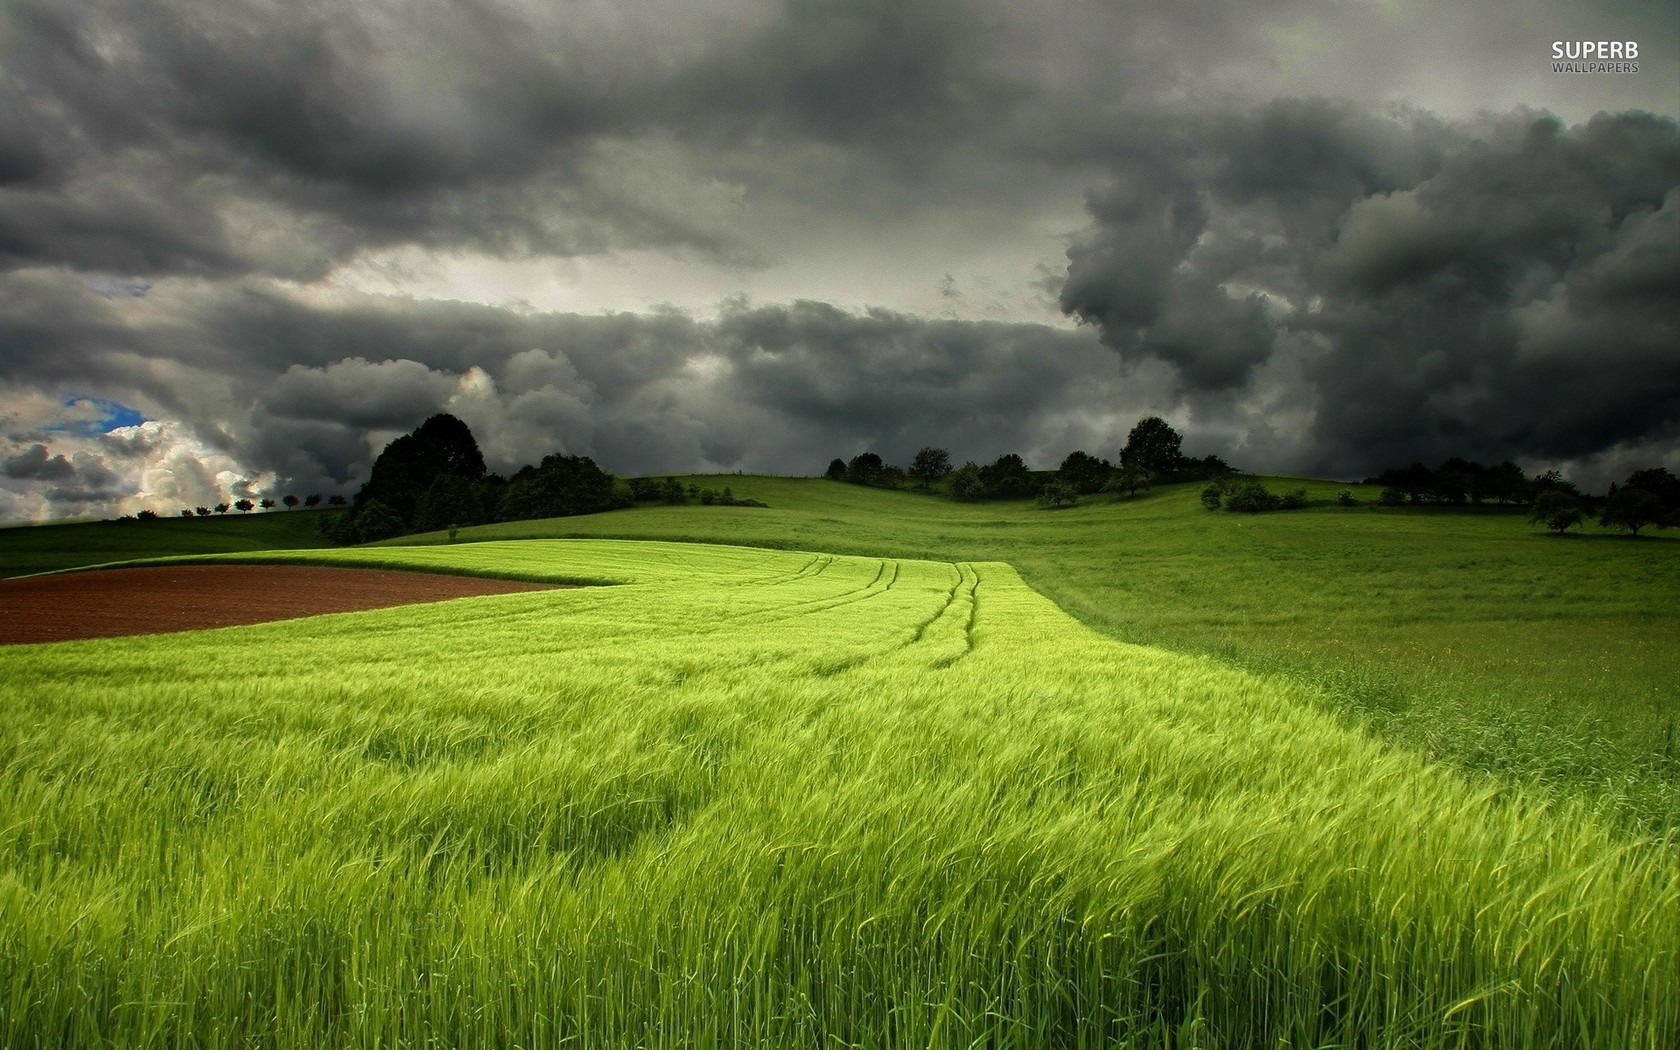 10 Storm Clouds Over A Field Of Green Wheat Wallpapers And